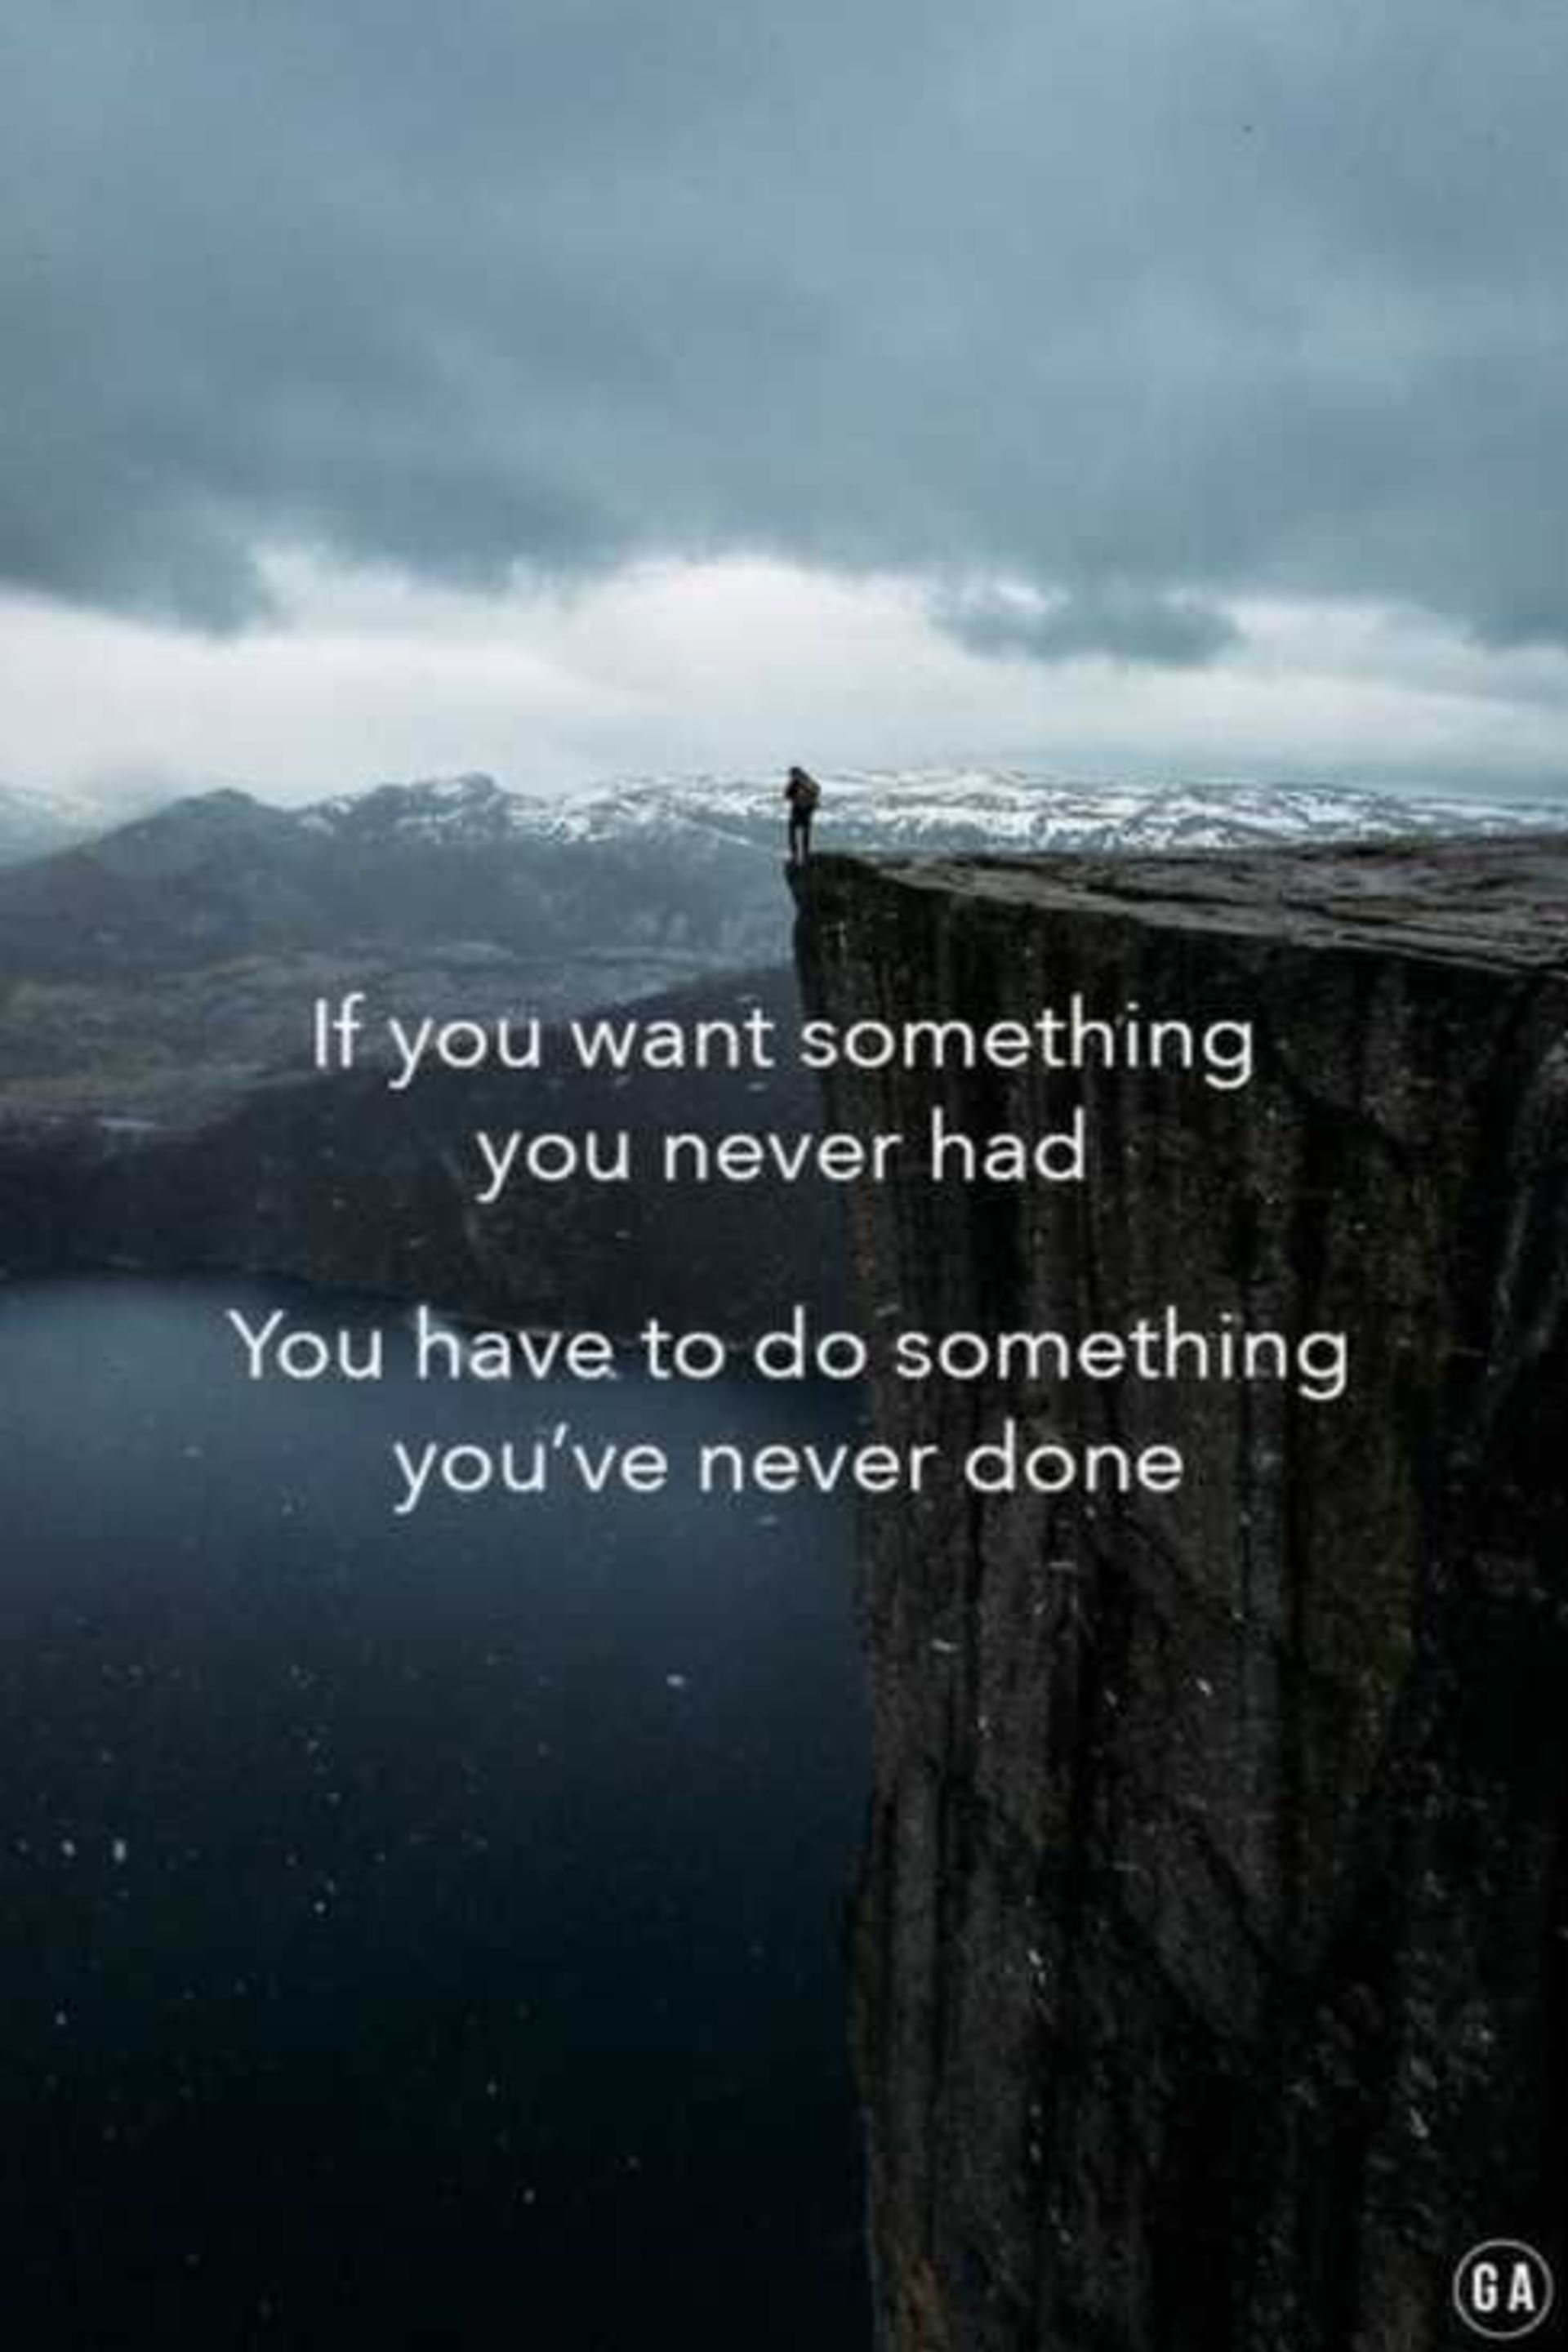 If you want something You've never had, go where you've never been